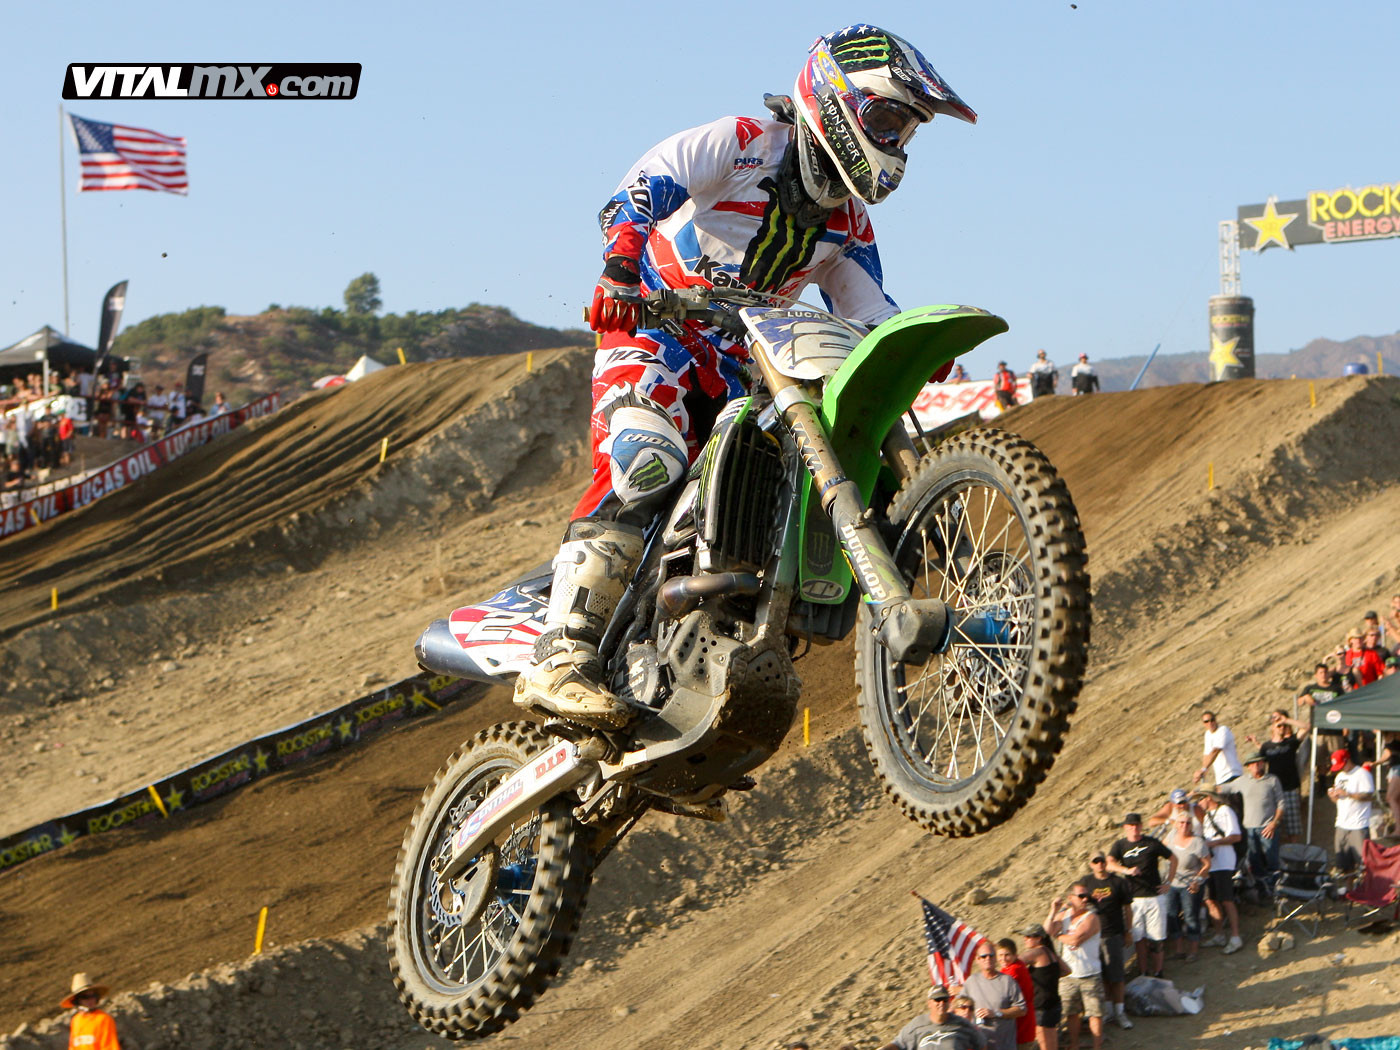 Ryan Villopoto - Team USA Wallpapers - Motocross Pictures - Vital MX